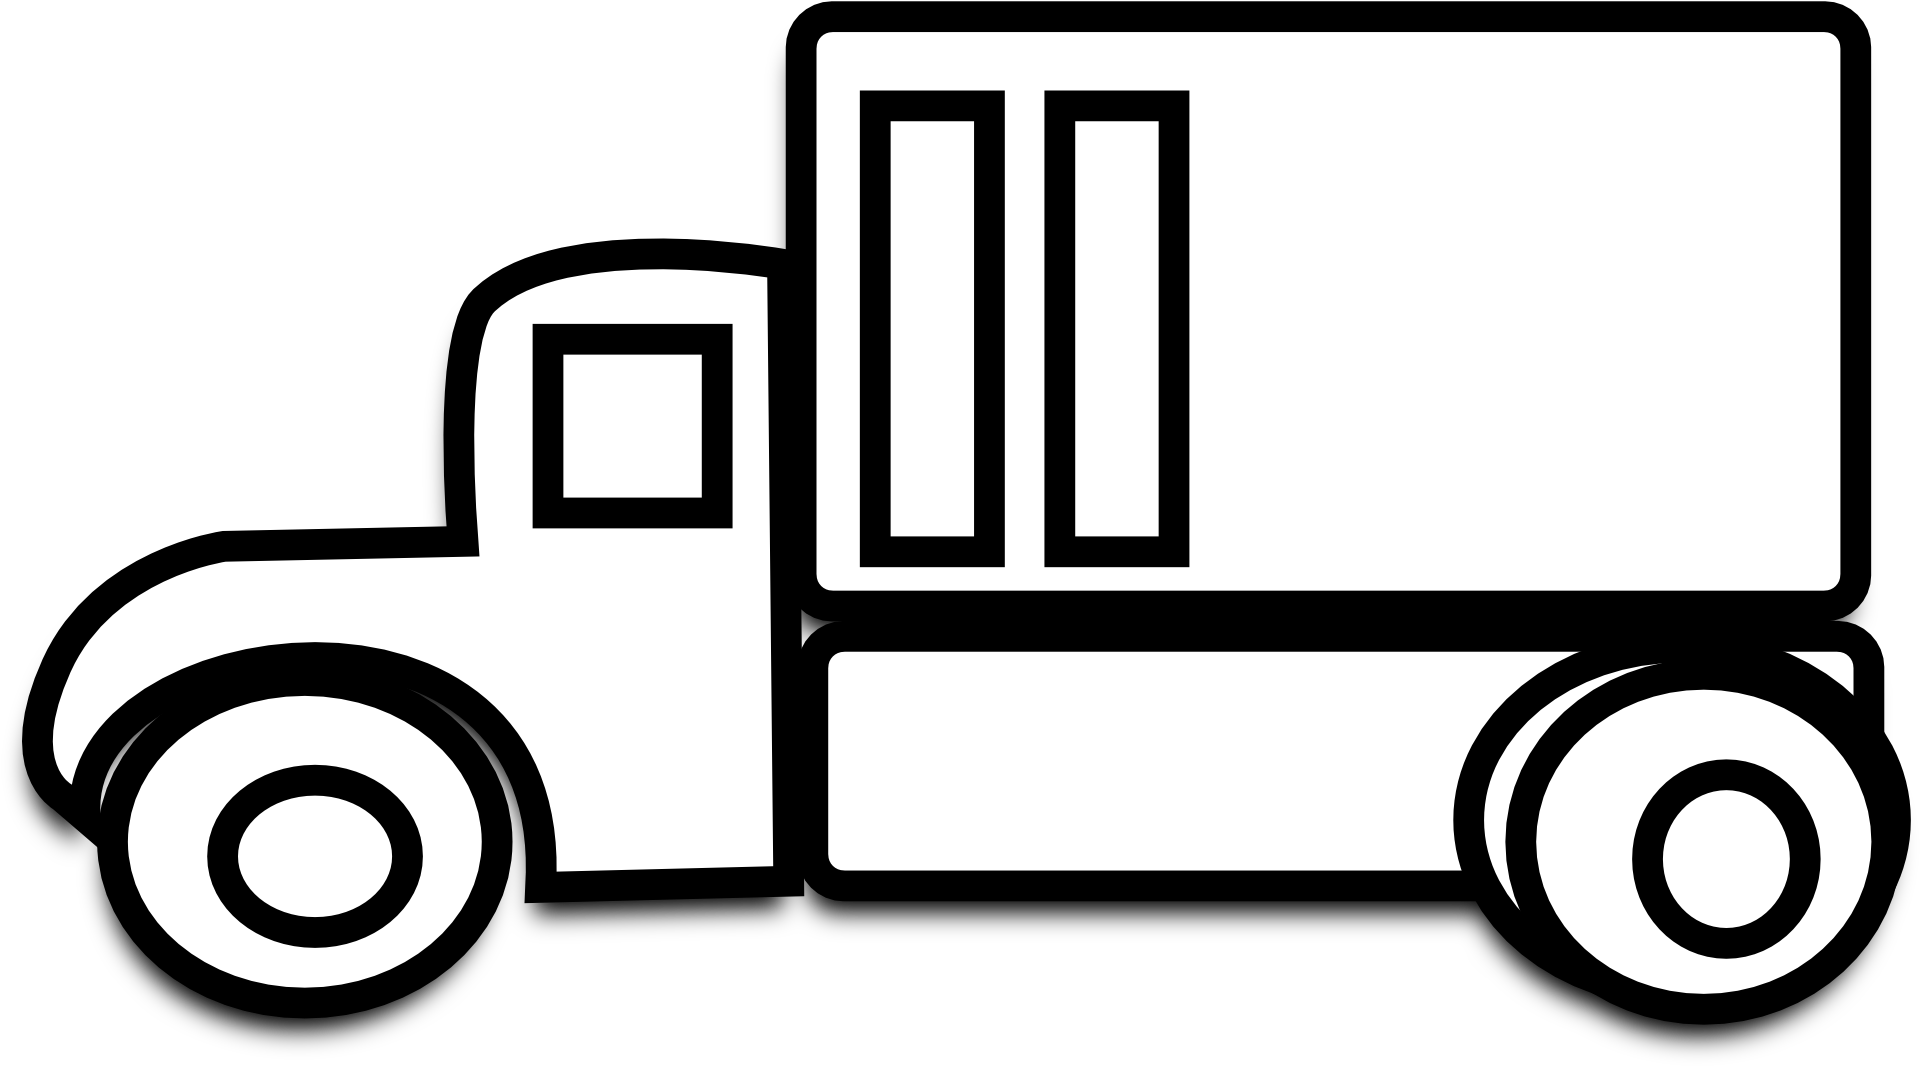 Big truck clipart black and white vector library stock Car Clipart Black Background - Car Clipart Black And White Free ... vector library stock